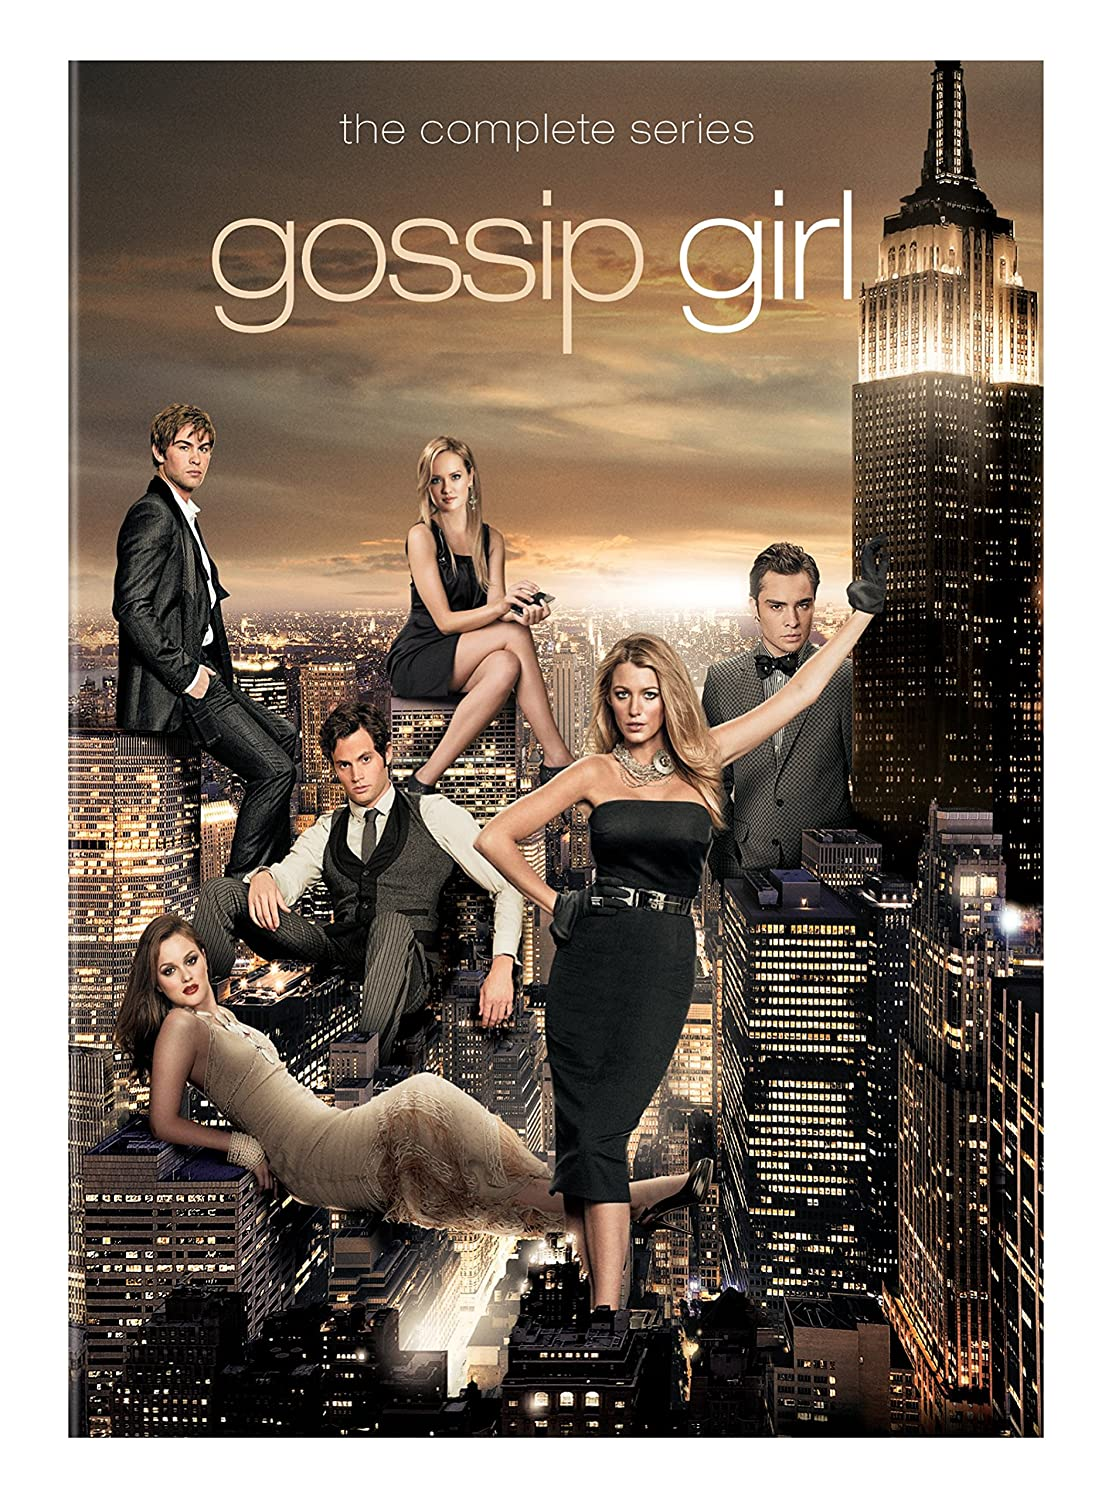 Gossip Girl: The Complete Series Various Warner Bros. Home Video Movie TV Shows / TV Movie